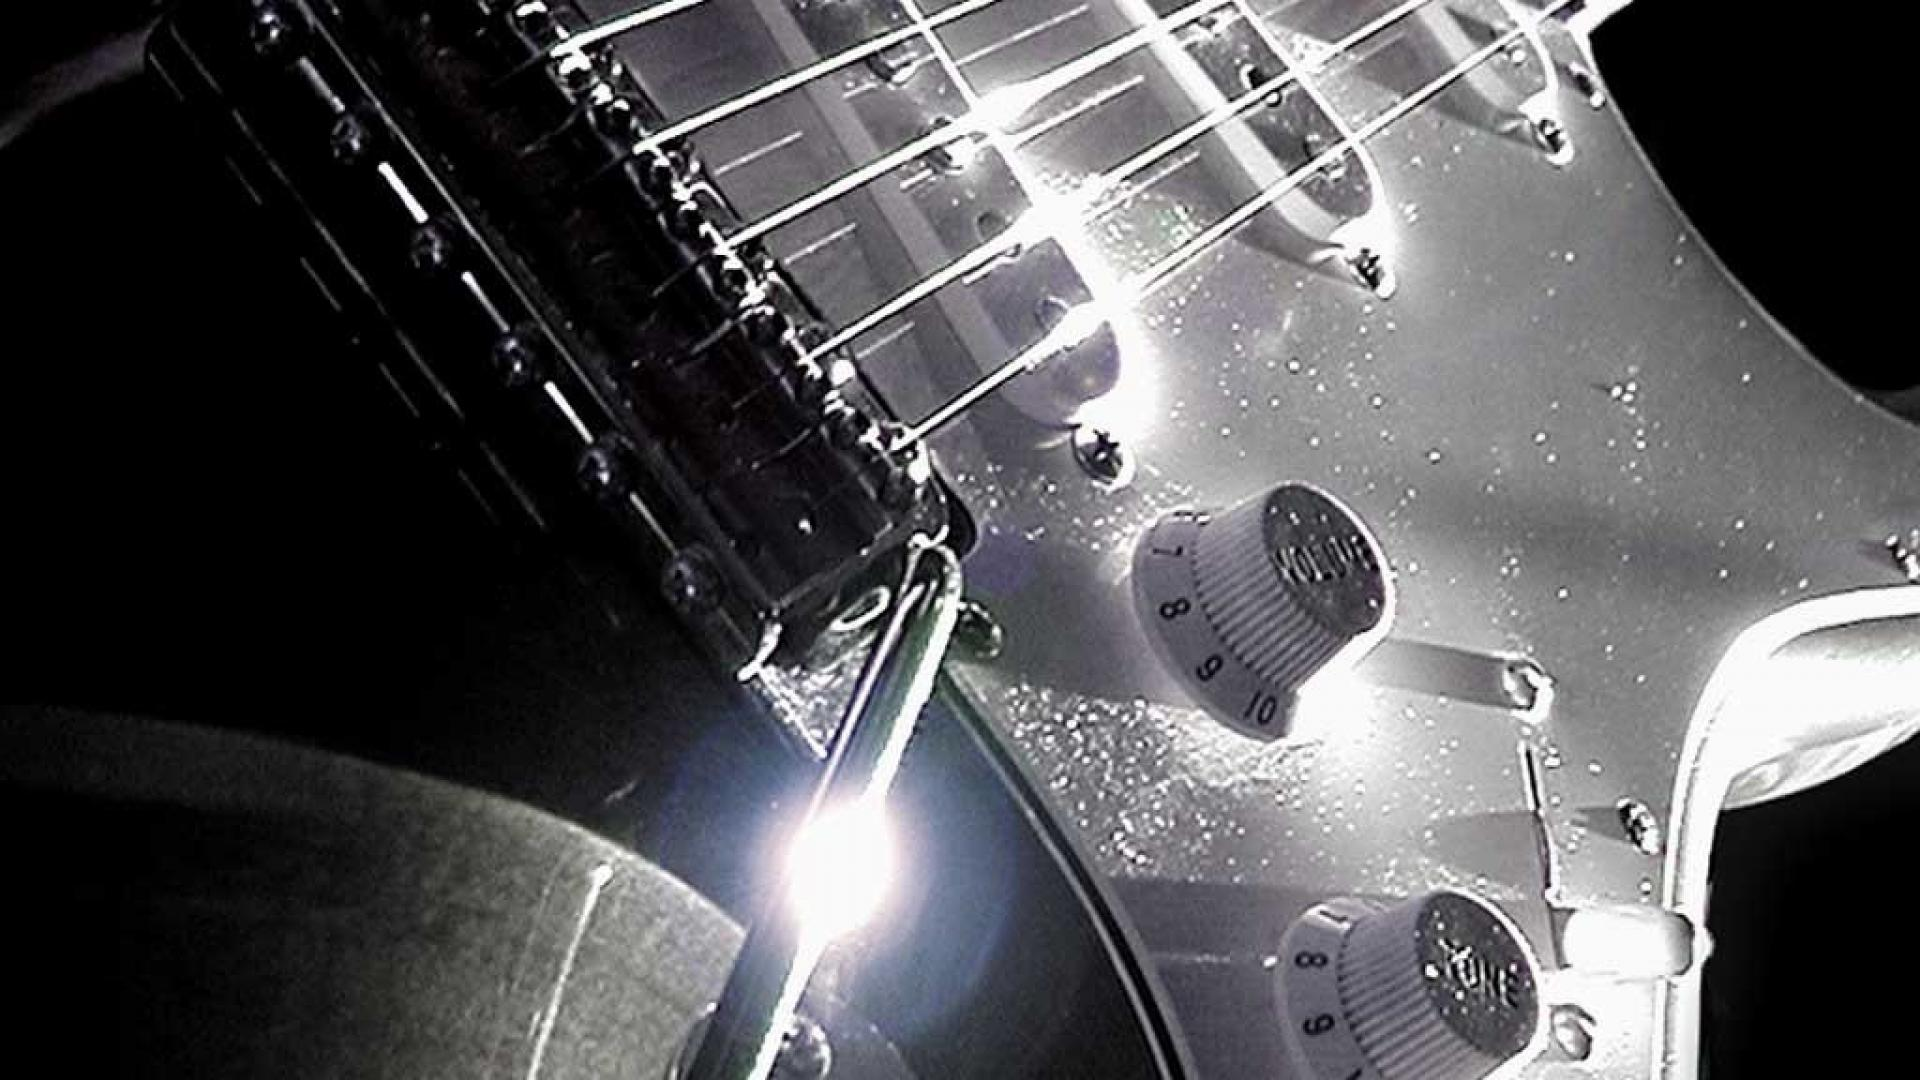 My wallpapers music wallpaper fender stratocaster HQ WALLPAPER 1920x1080